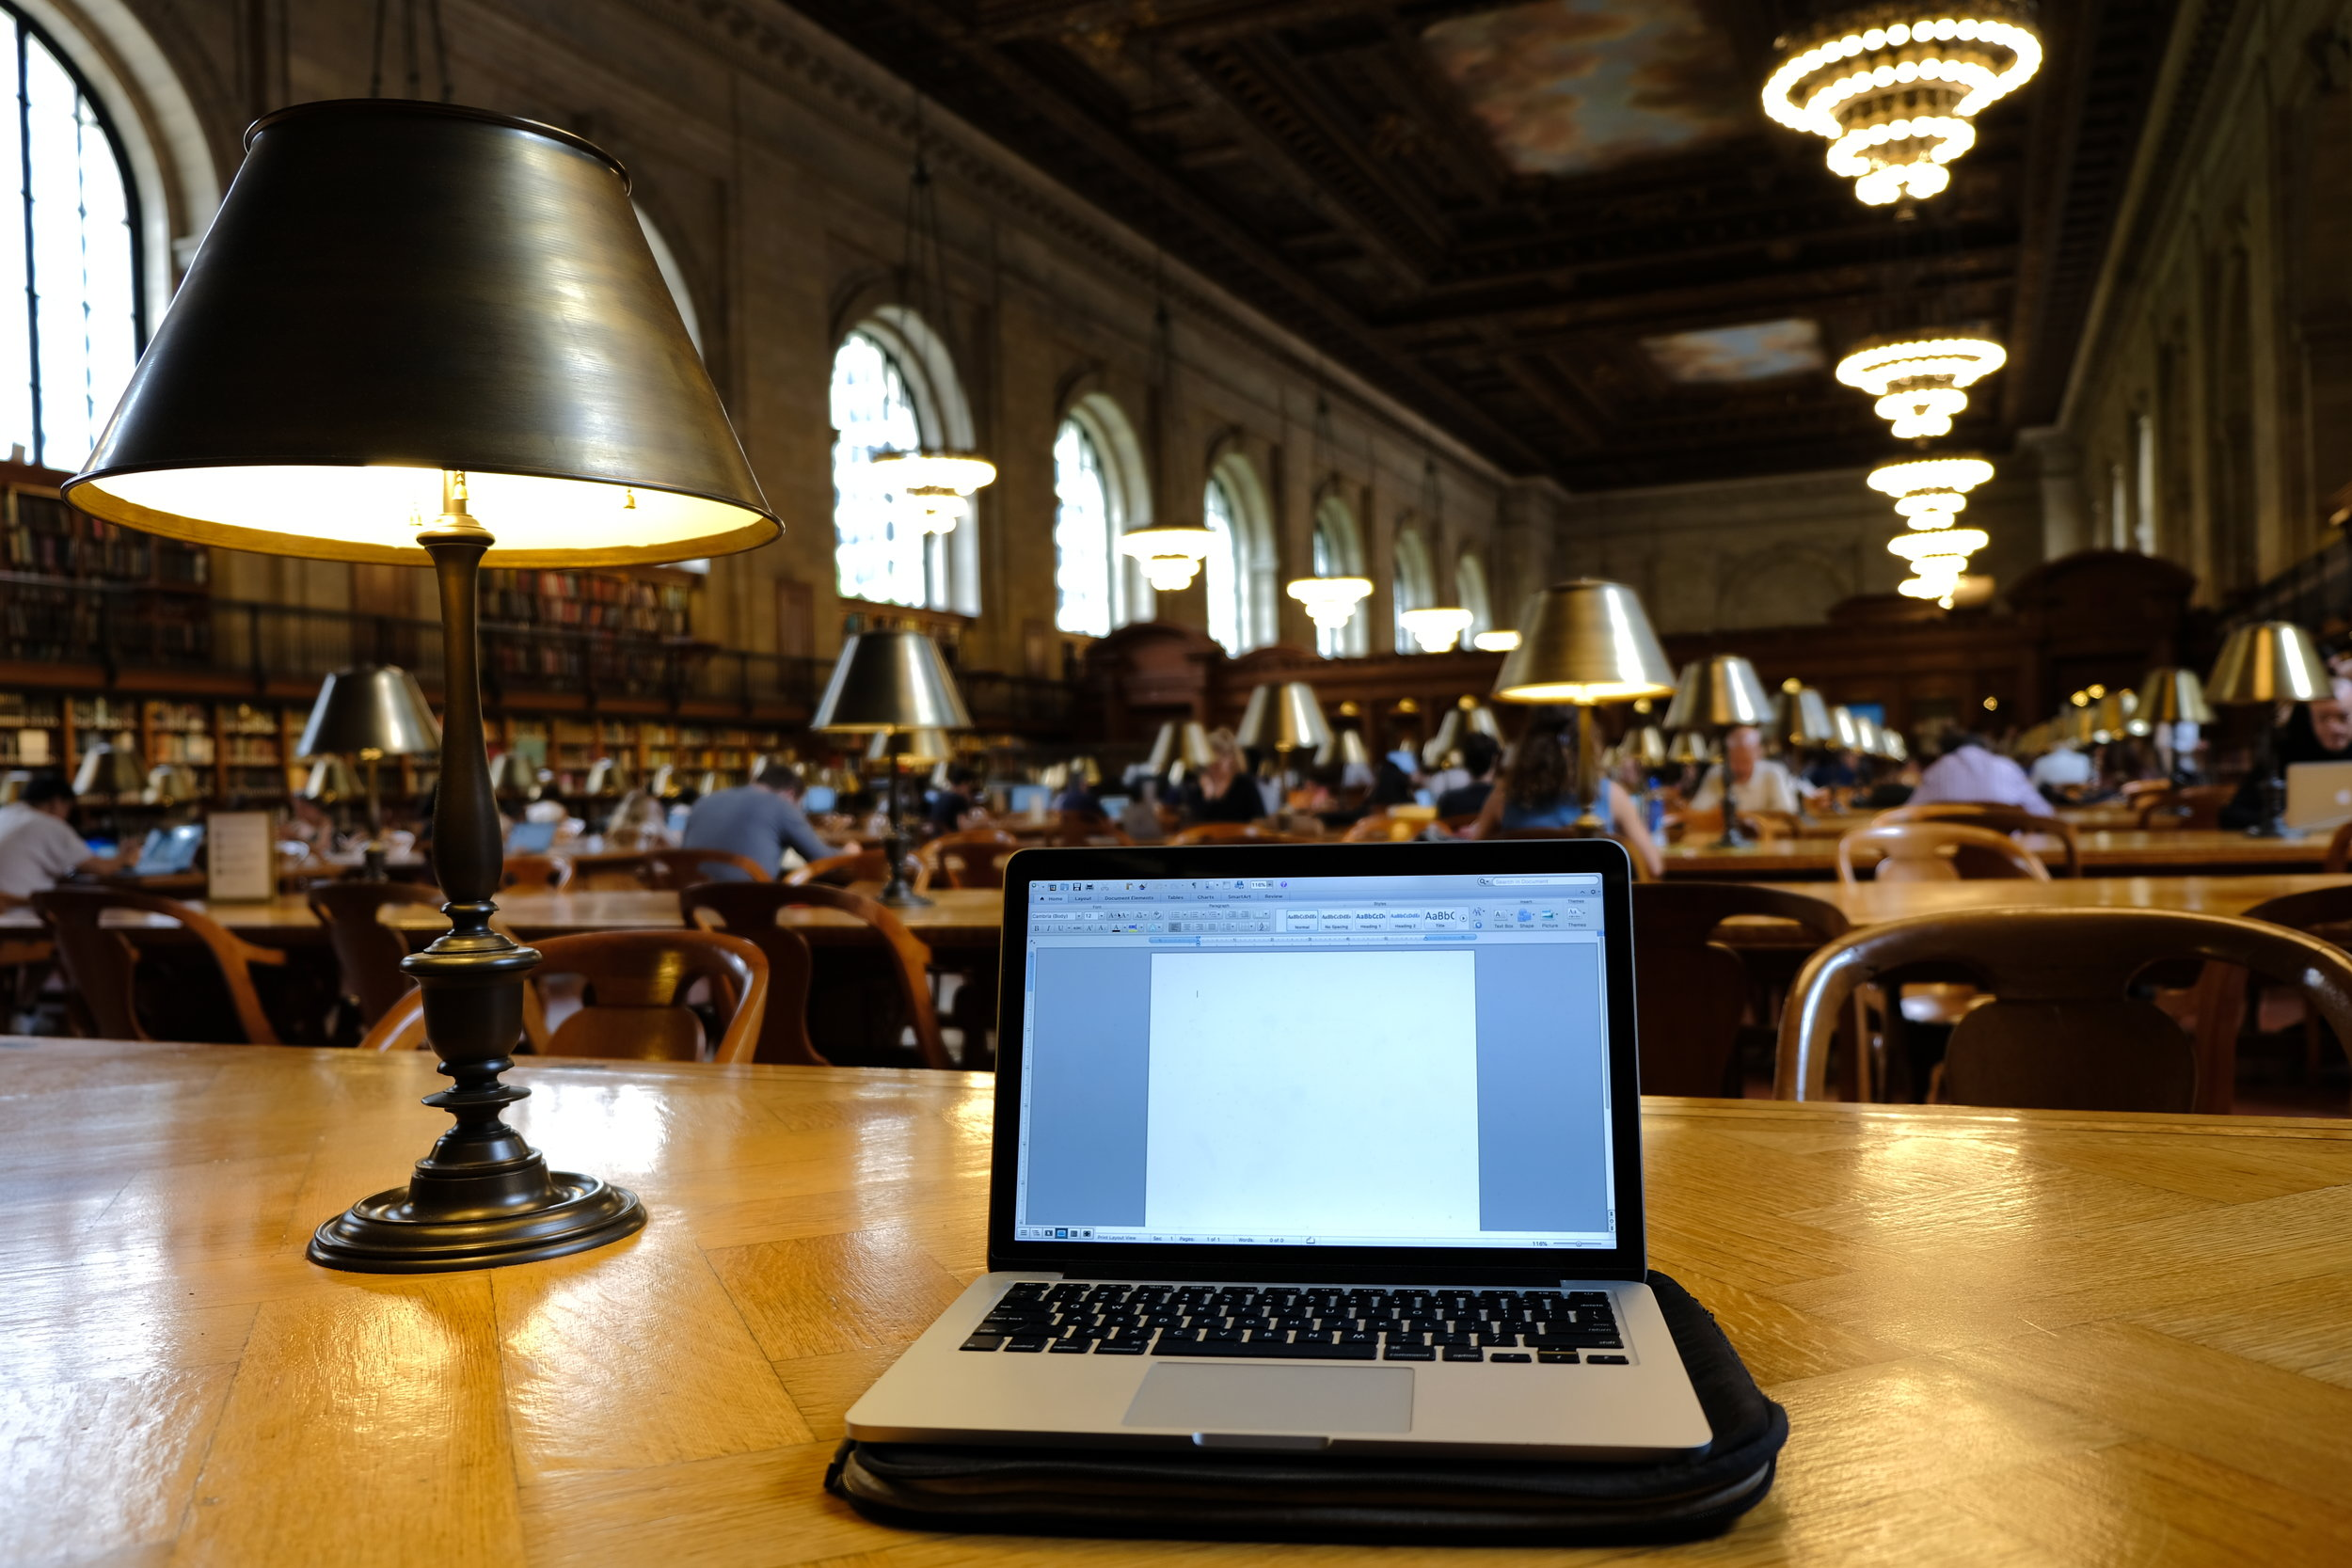 Working at the New York Public Library